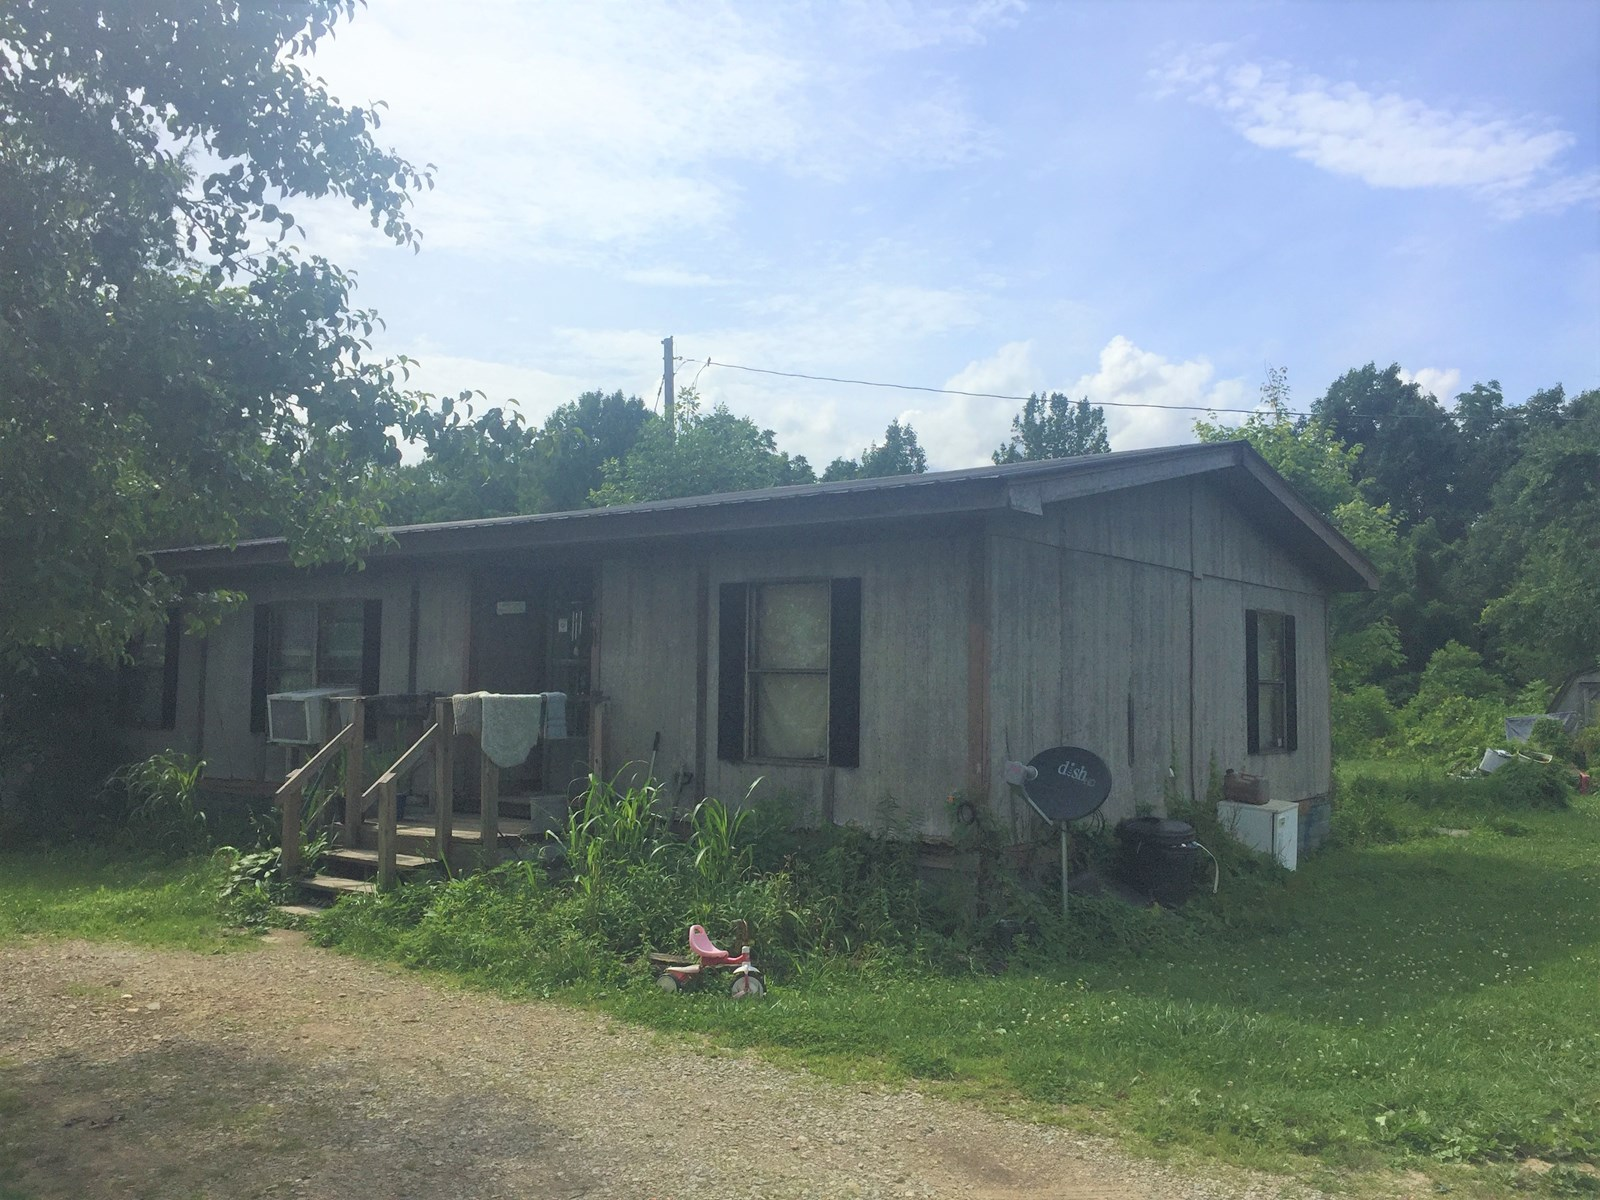 MOBILE HOME ON 1.2 ACRES - NEEDS TLC - LIBERTY, KY.